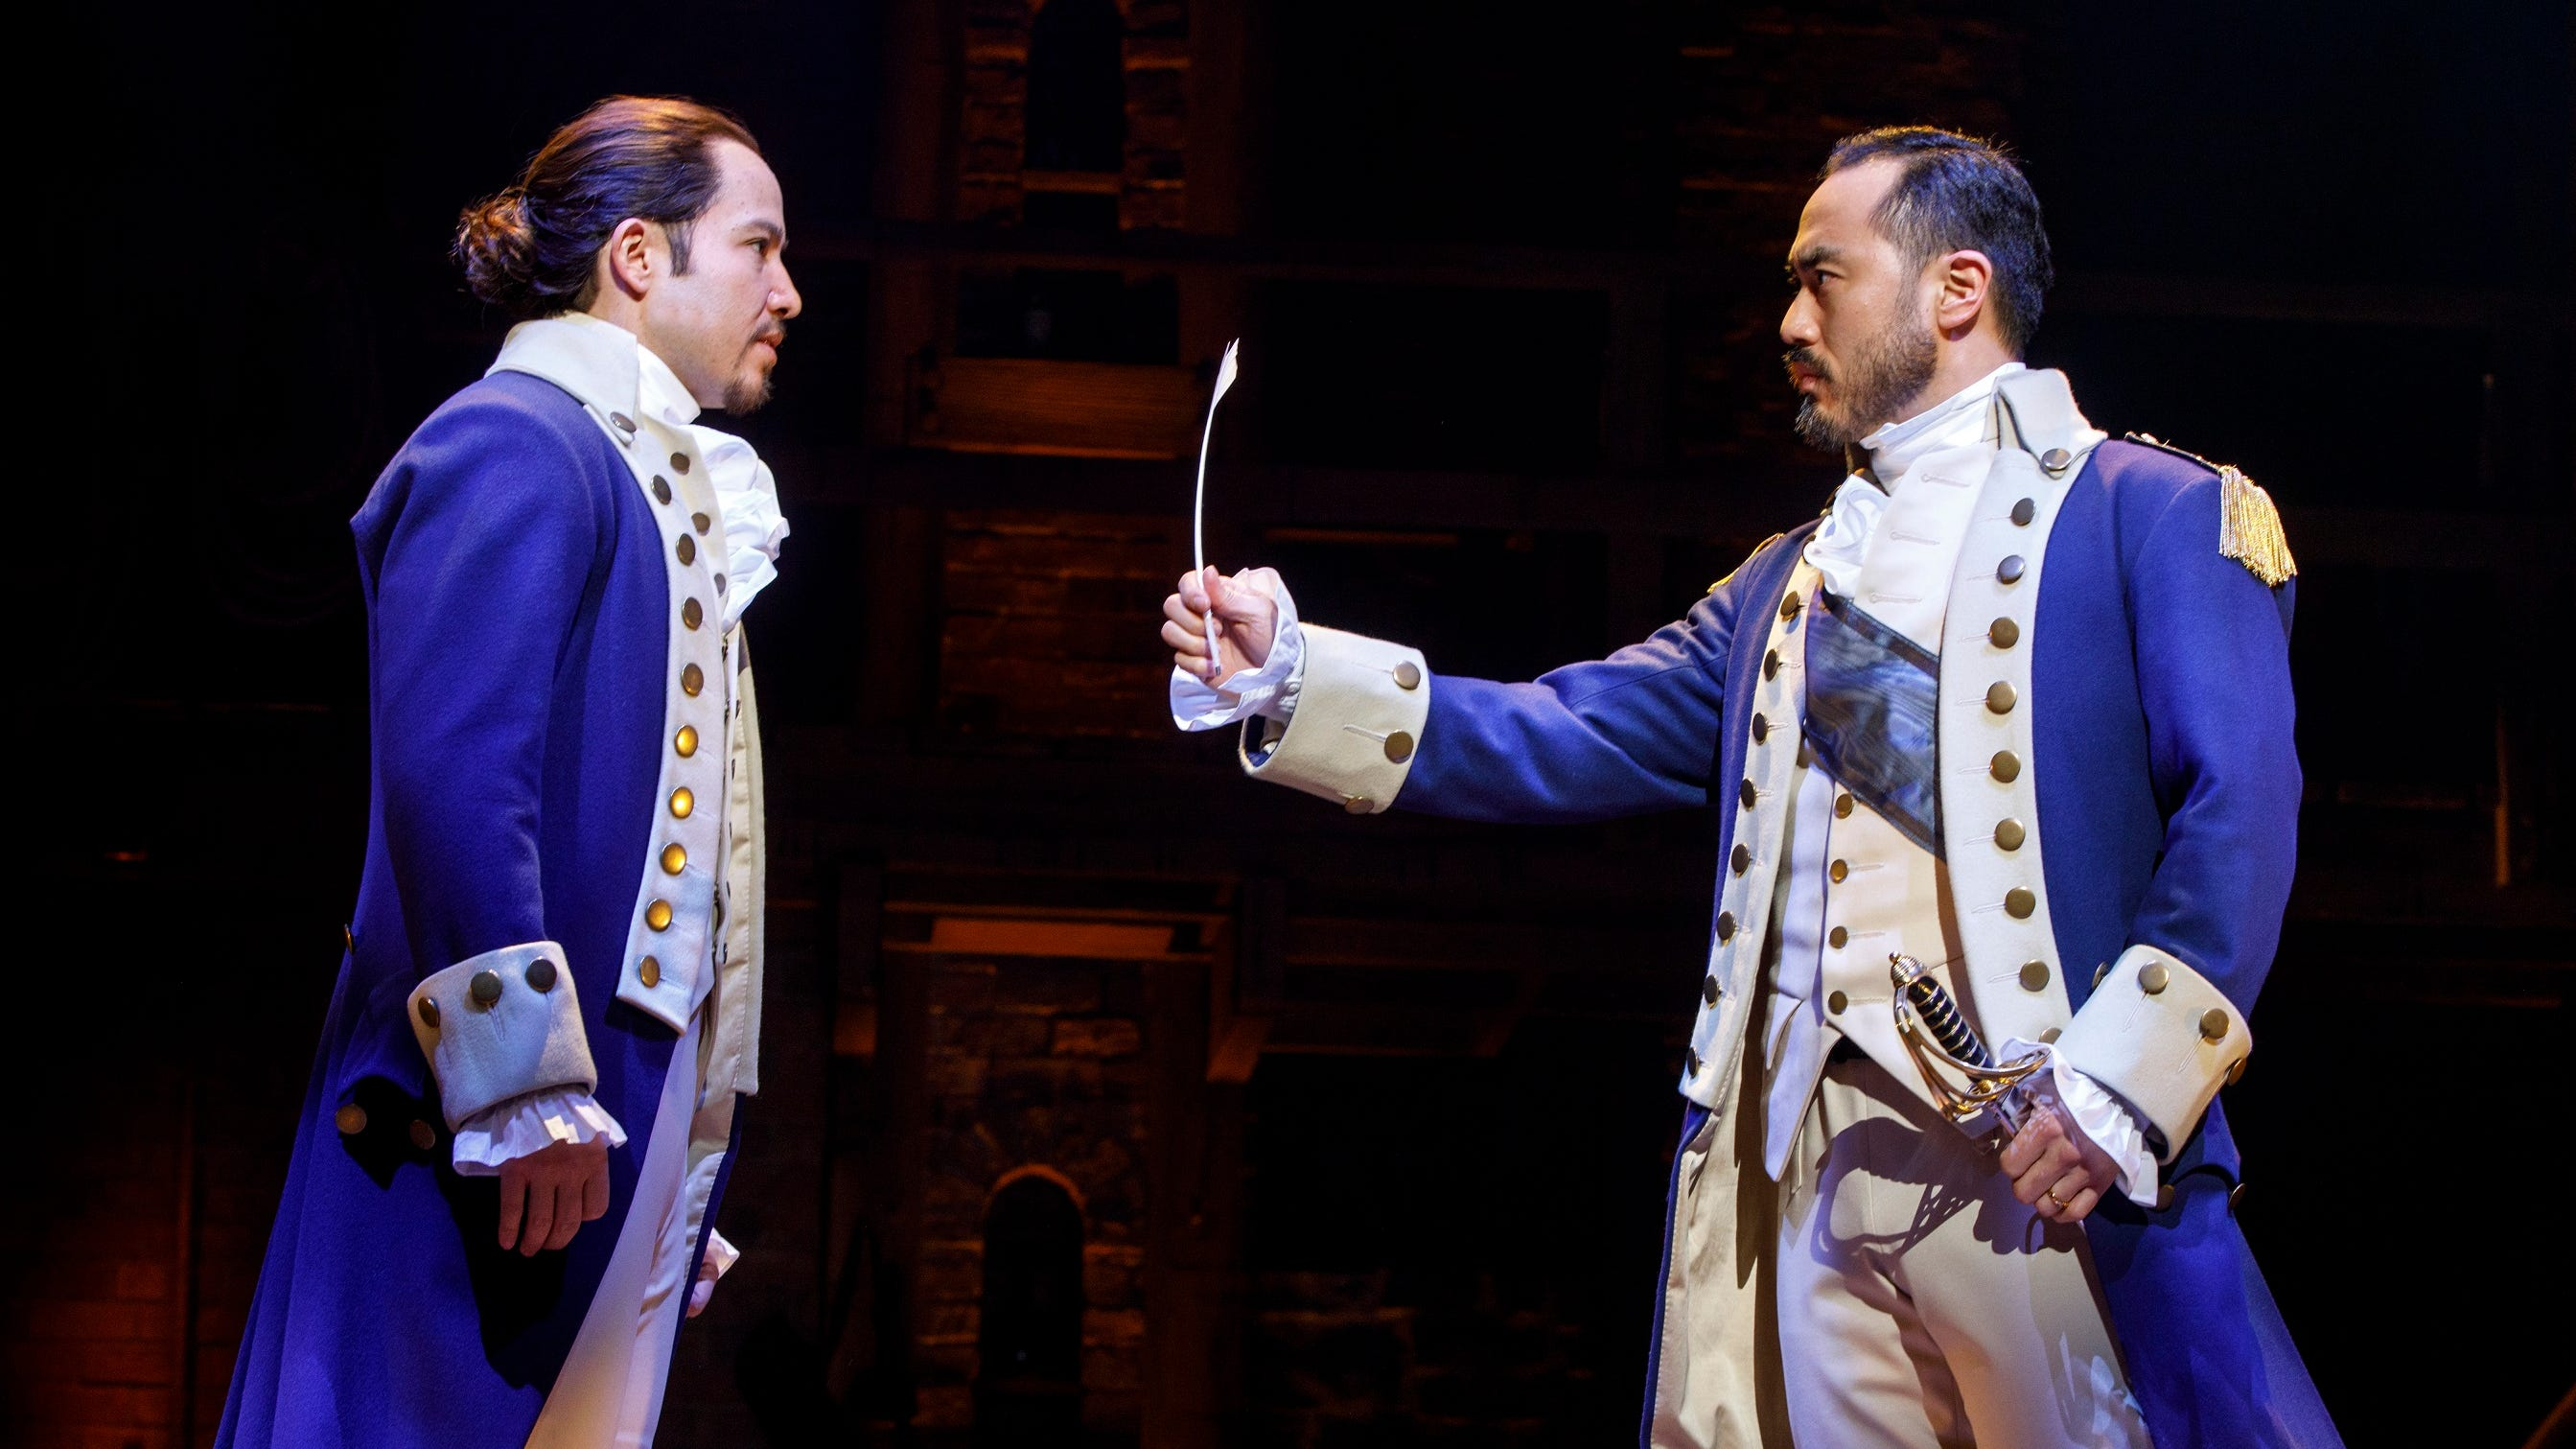 Gone: tickets for 'Hamilton'